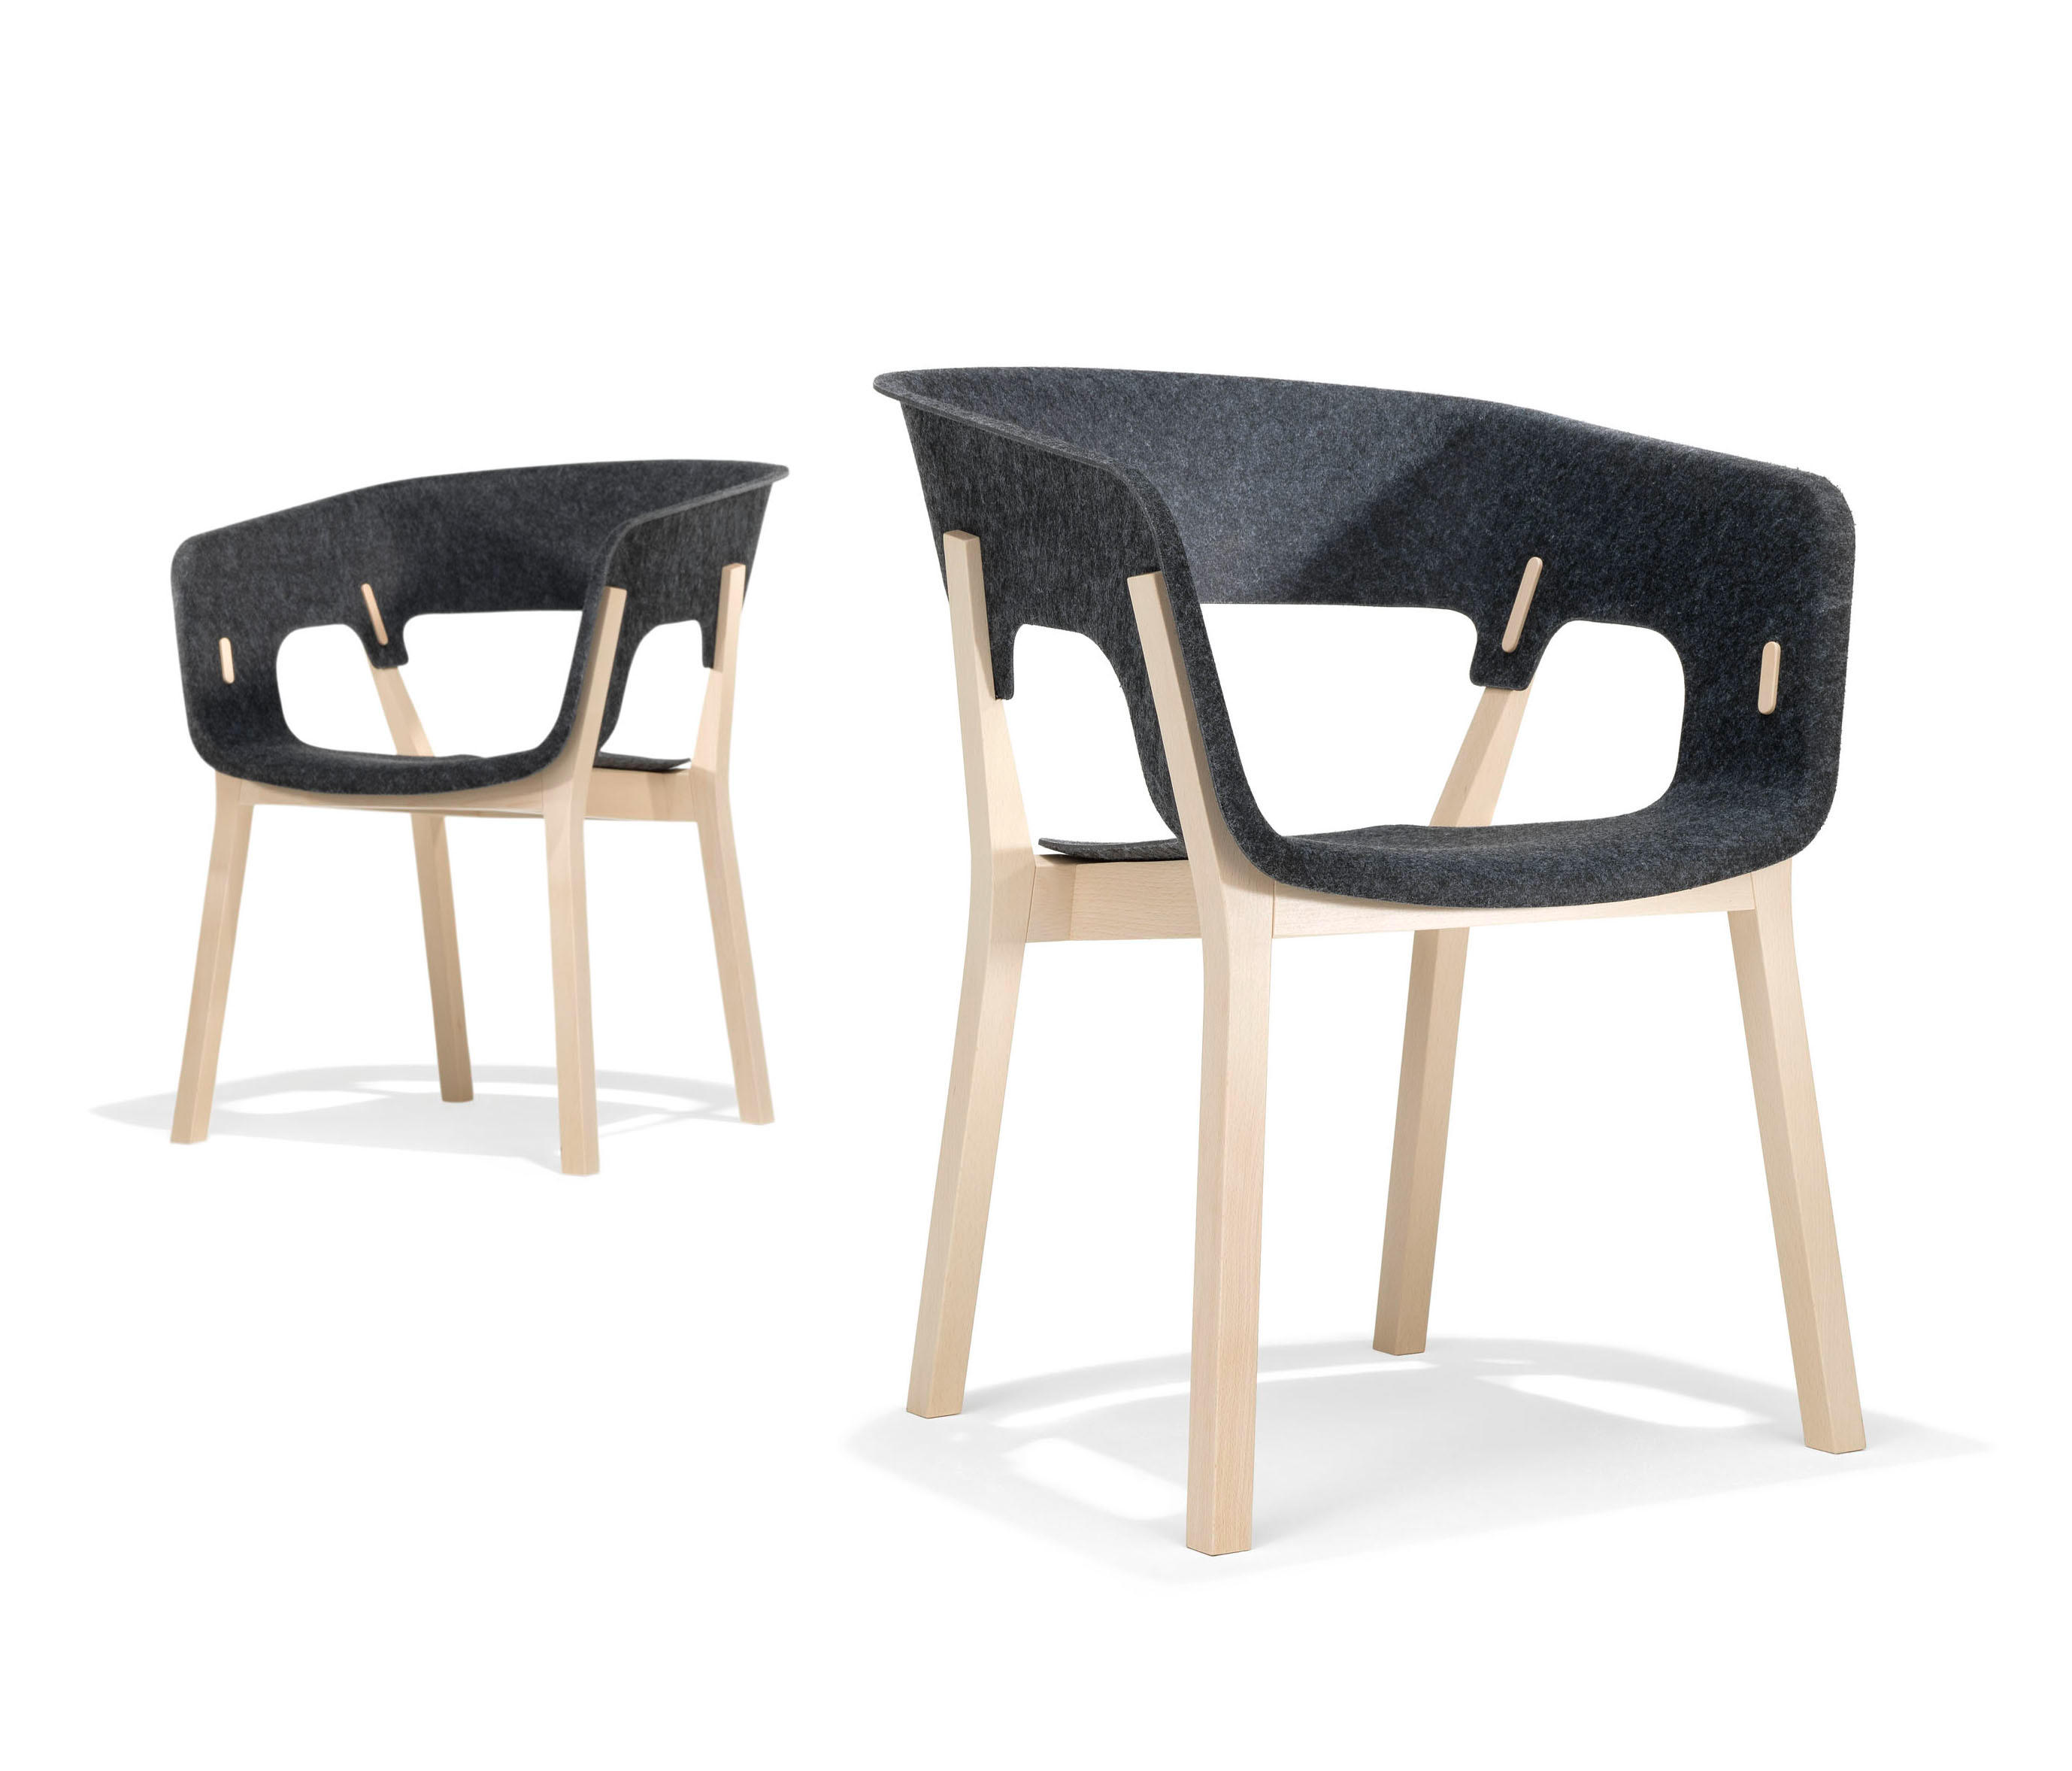 3002/4 NJORD - Visitors chairs / Side chairs from Kusch+Co | Architonic